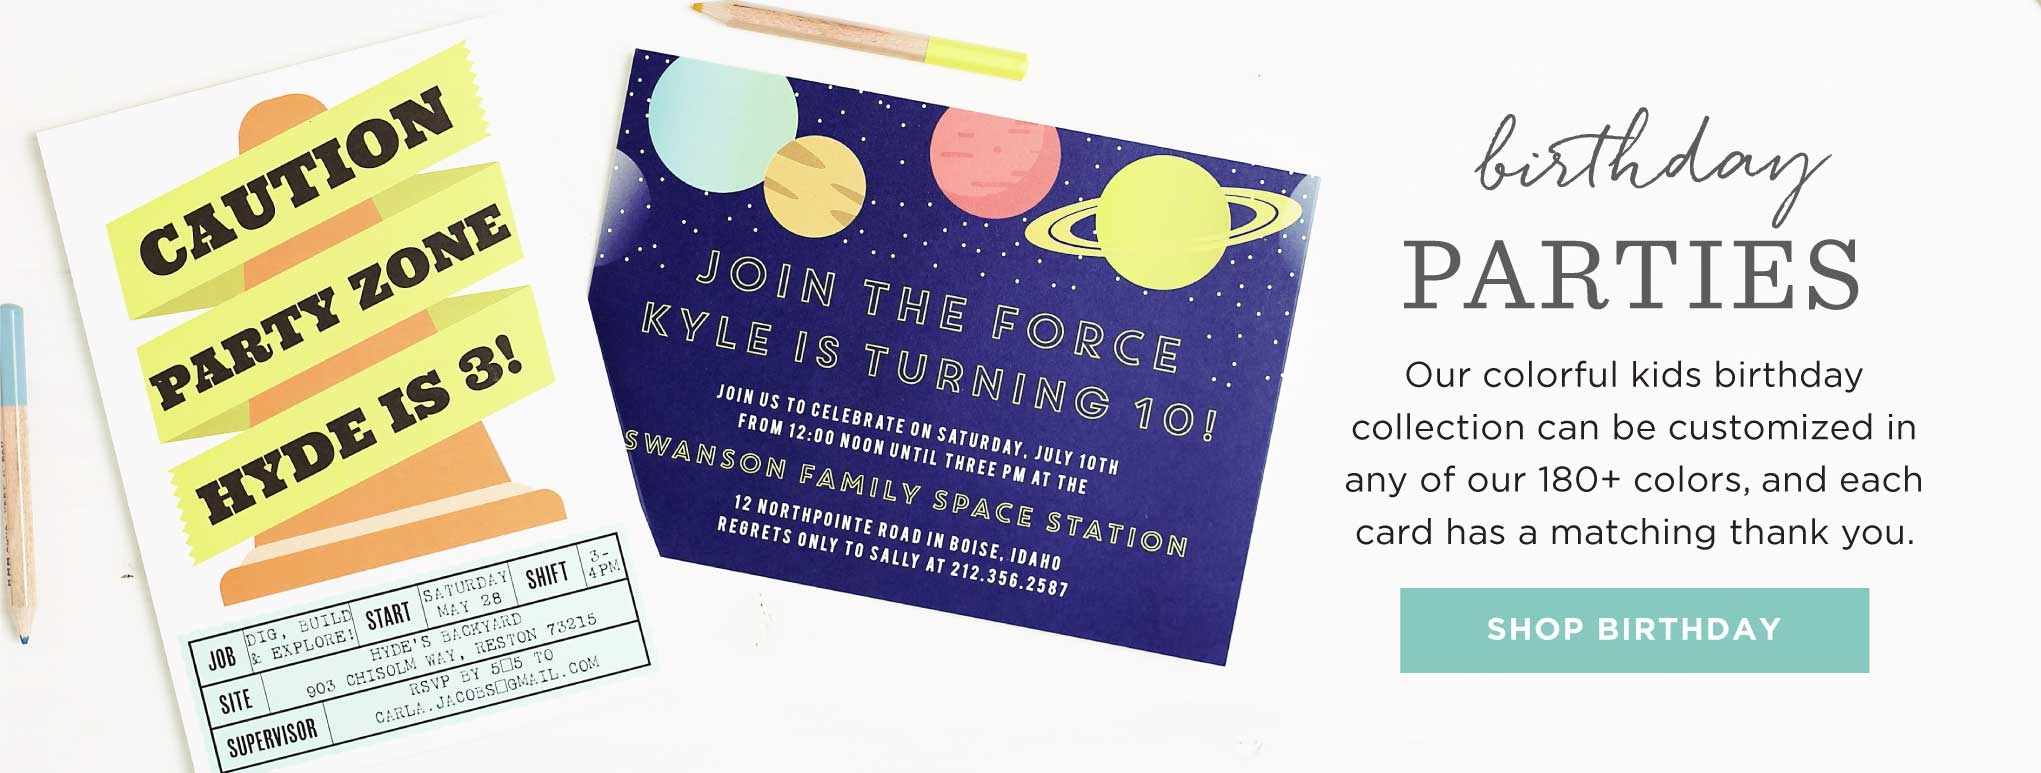 Birthday Party Invitations - 1 year, milestone, kids and more.